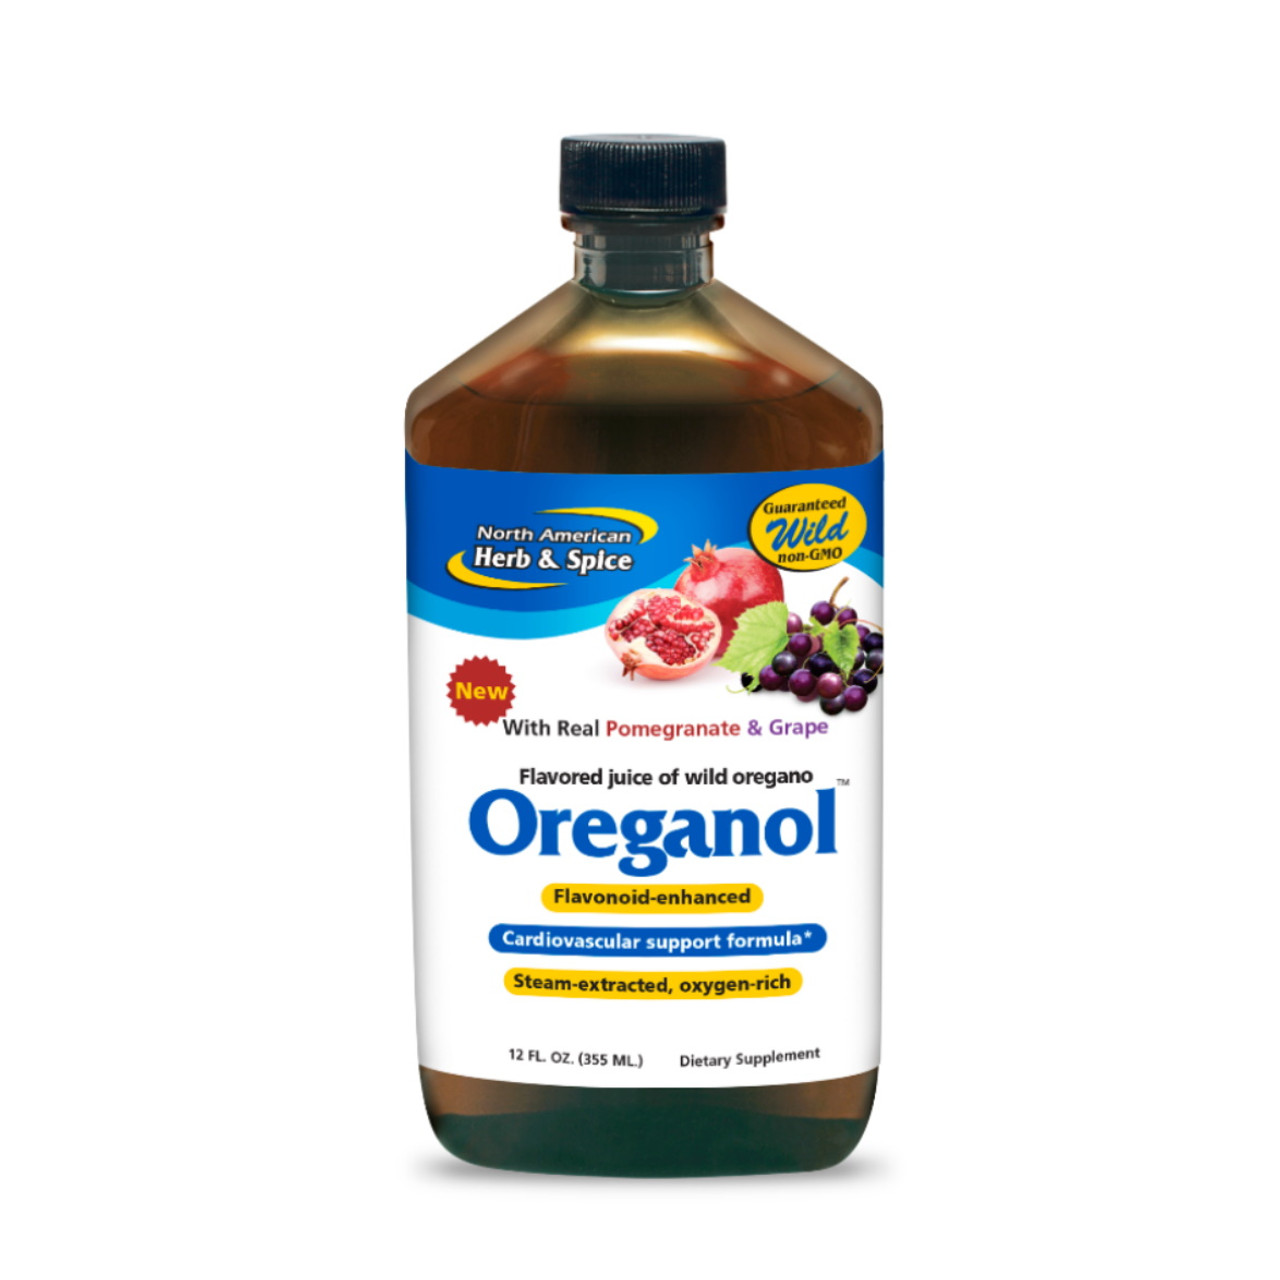 North American Herb Spice Oreganol P73 Juice Juice Of Oregano Pomegranate And Grape 355ml Evolution Organics